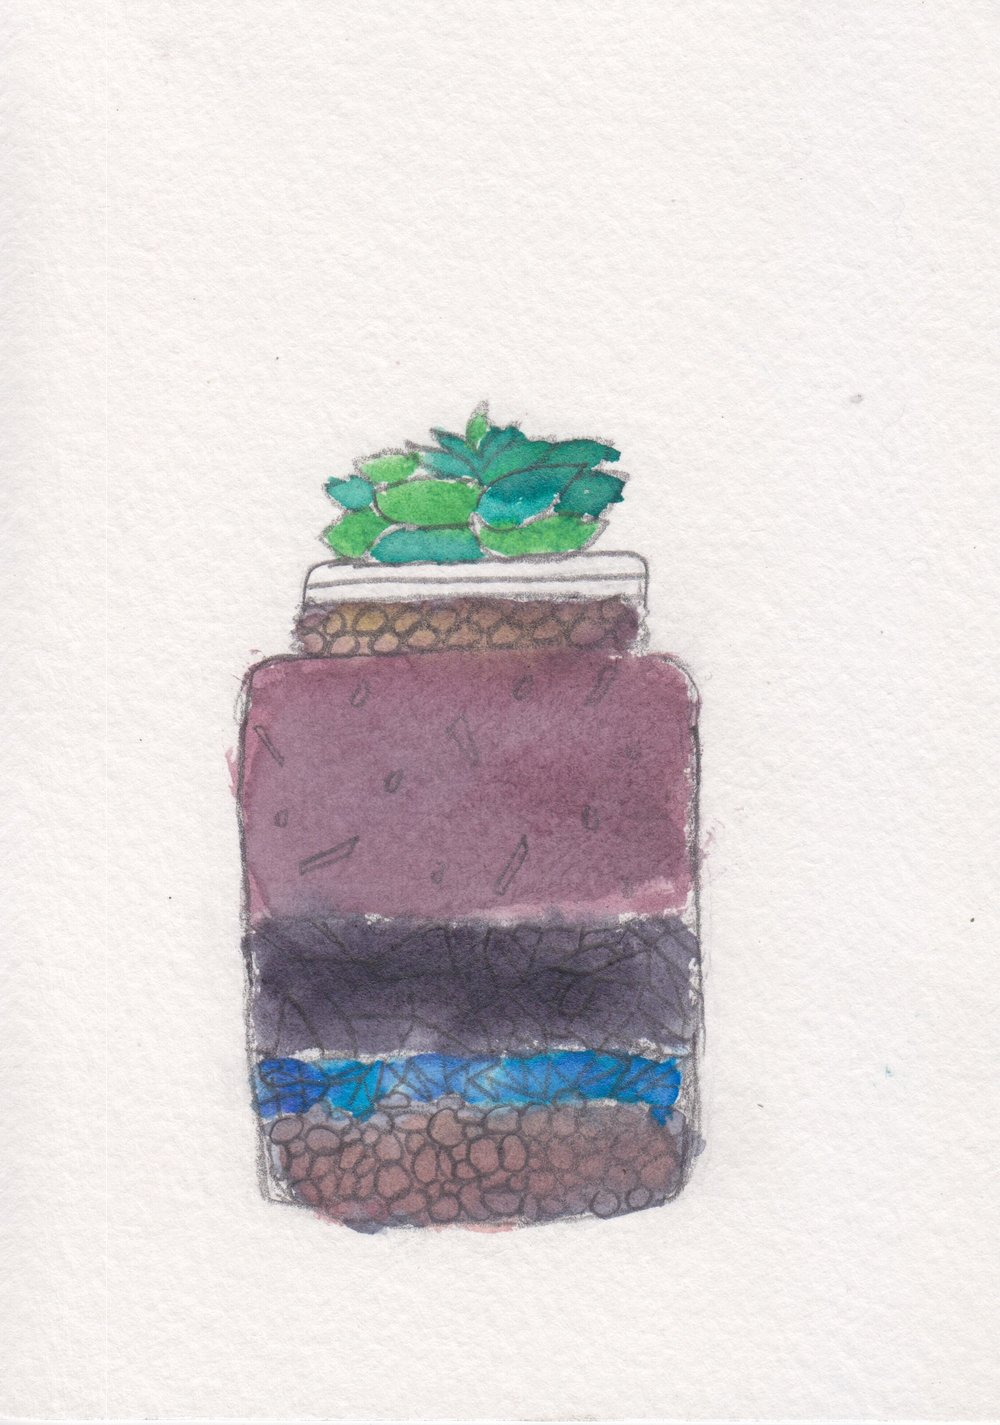 centro_watercolor terrarium_MariaRamos.jpeg